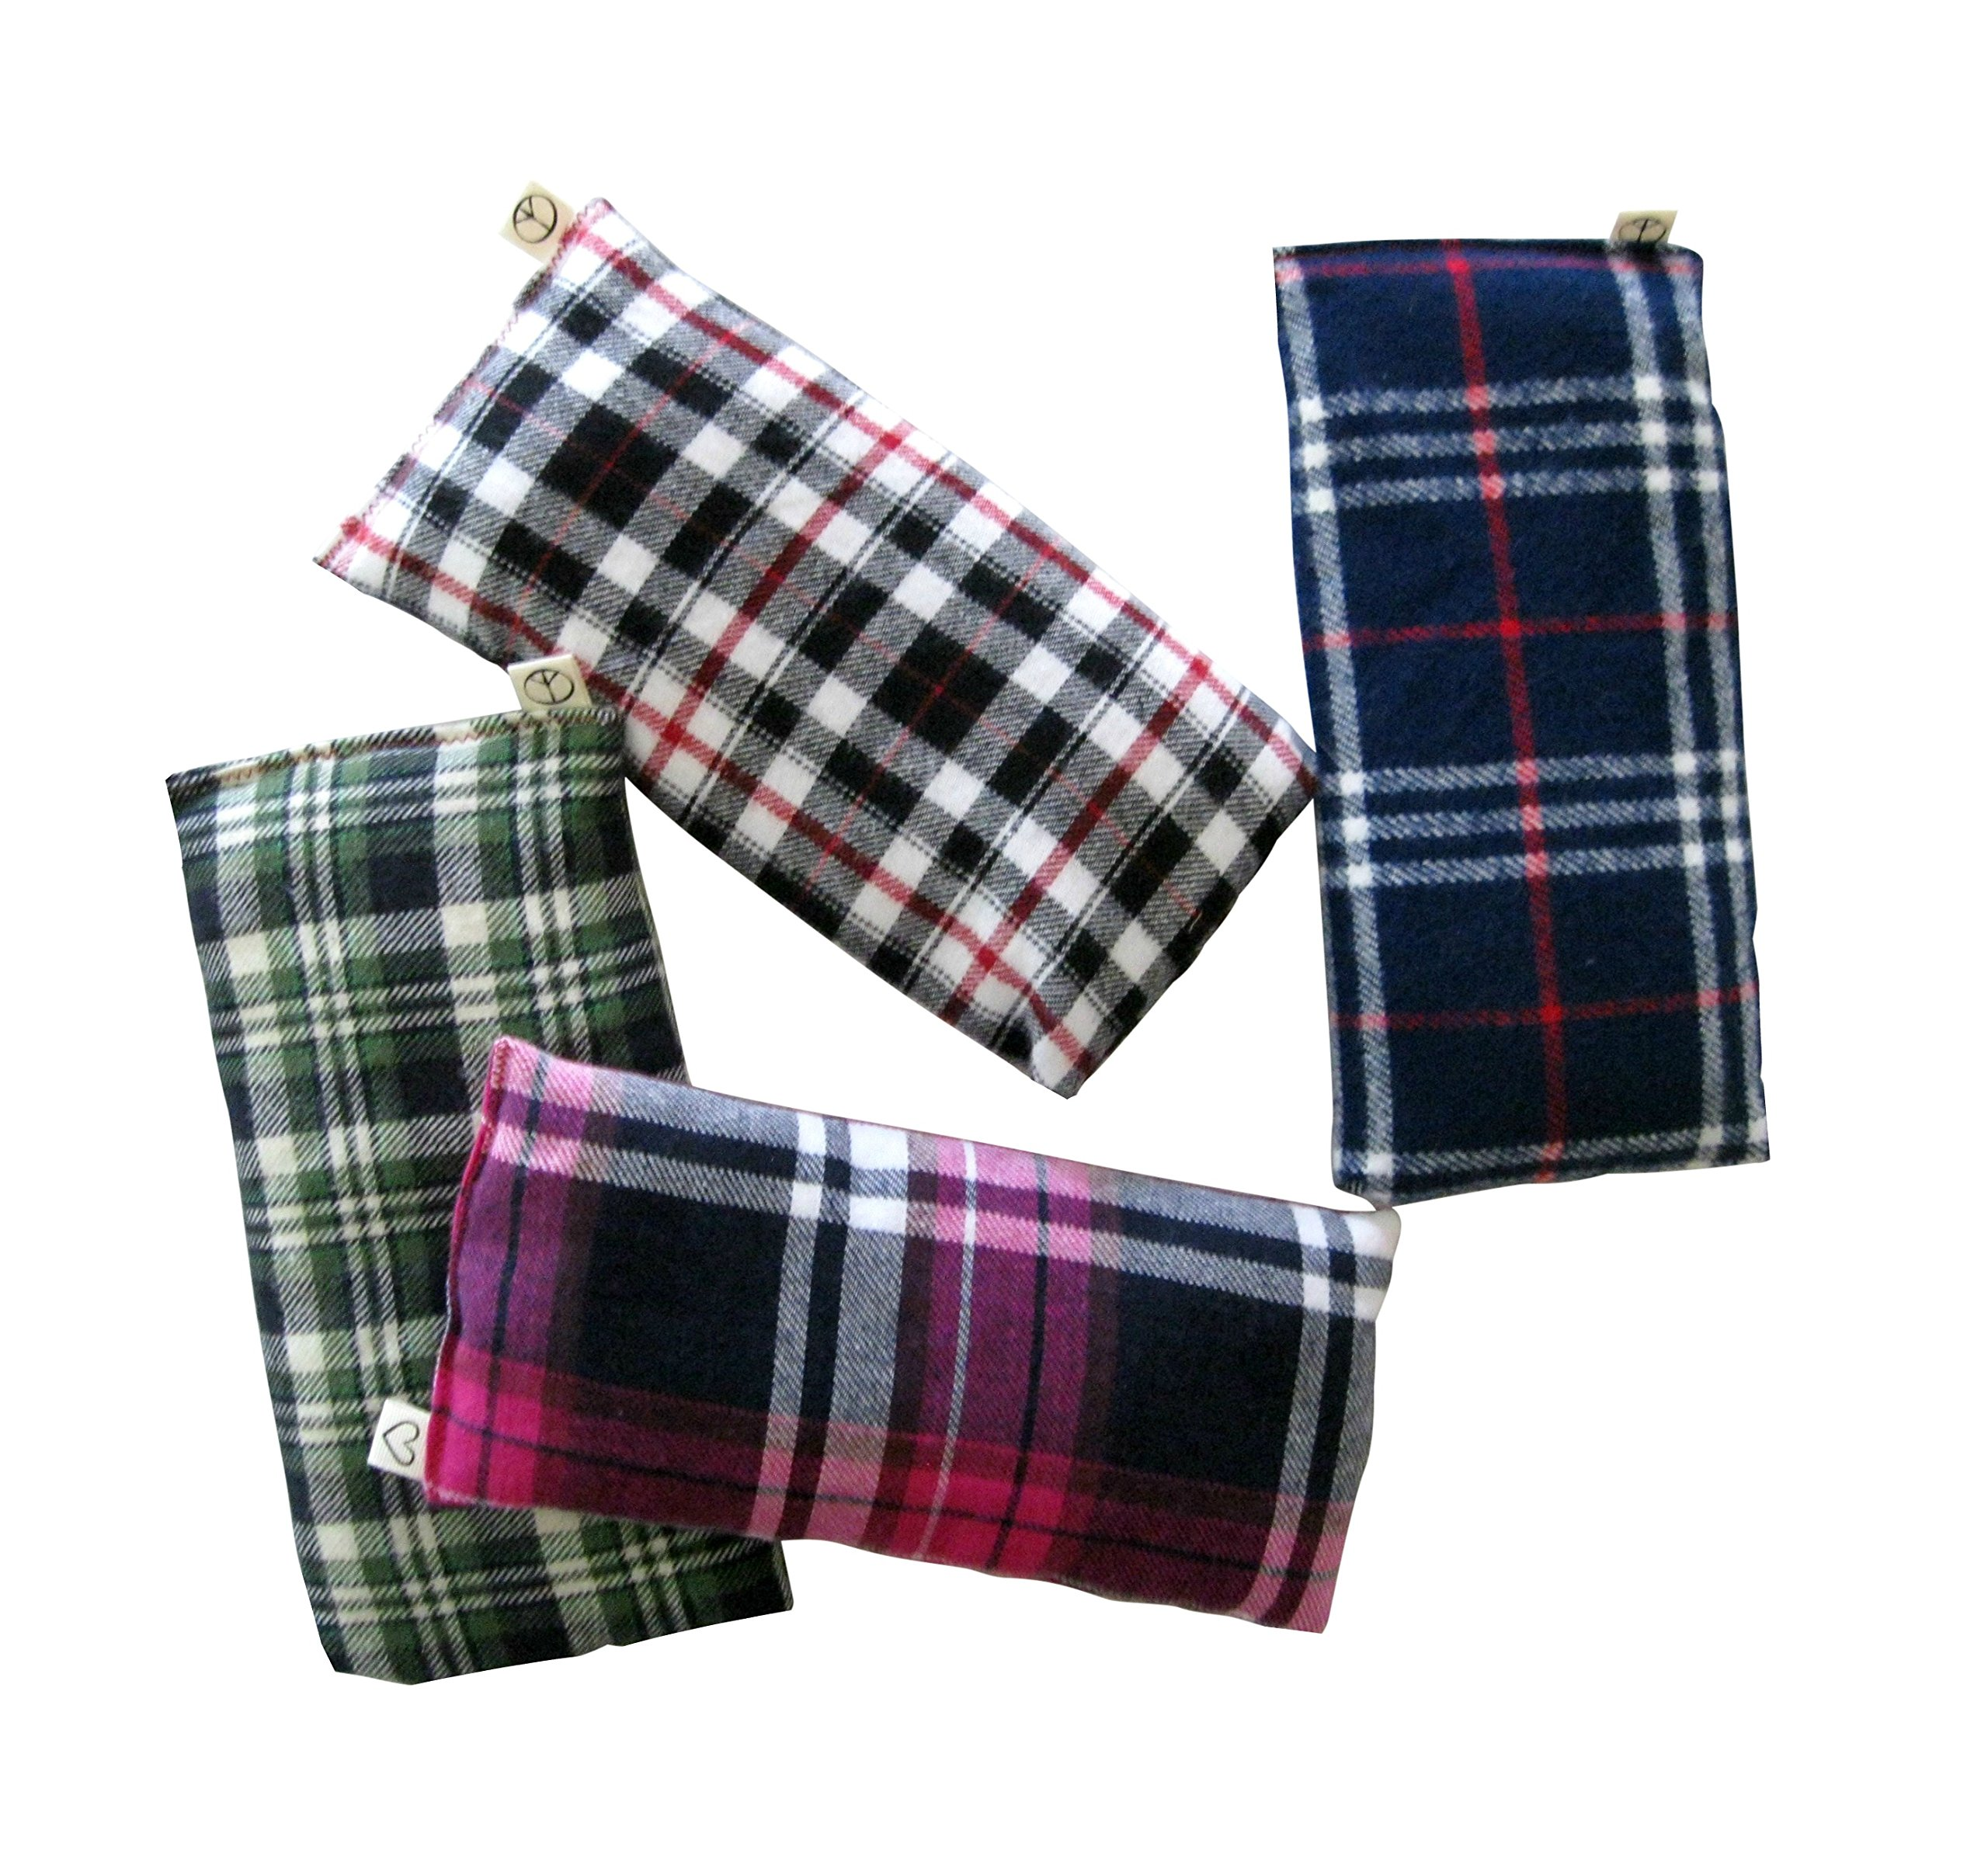 Scented Eye Pillows - Pack of (4) - Soft Cotton Flannel 4 x 8.5 - Organic Lavender Flax Seed - Plaid - red blue green yellow